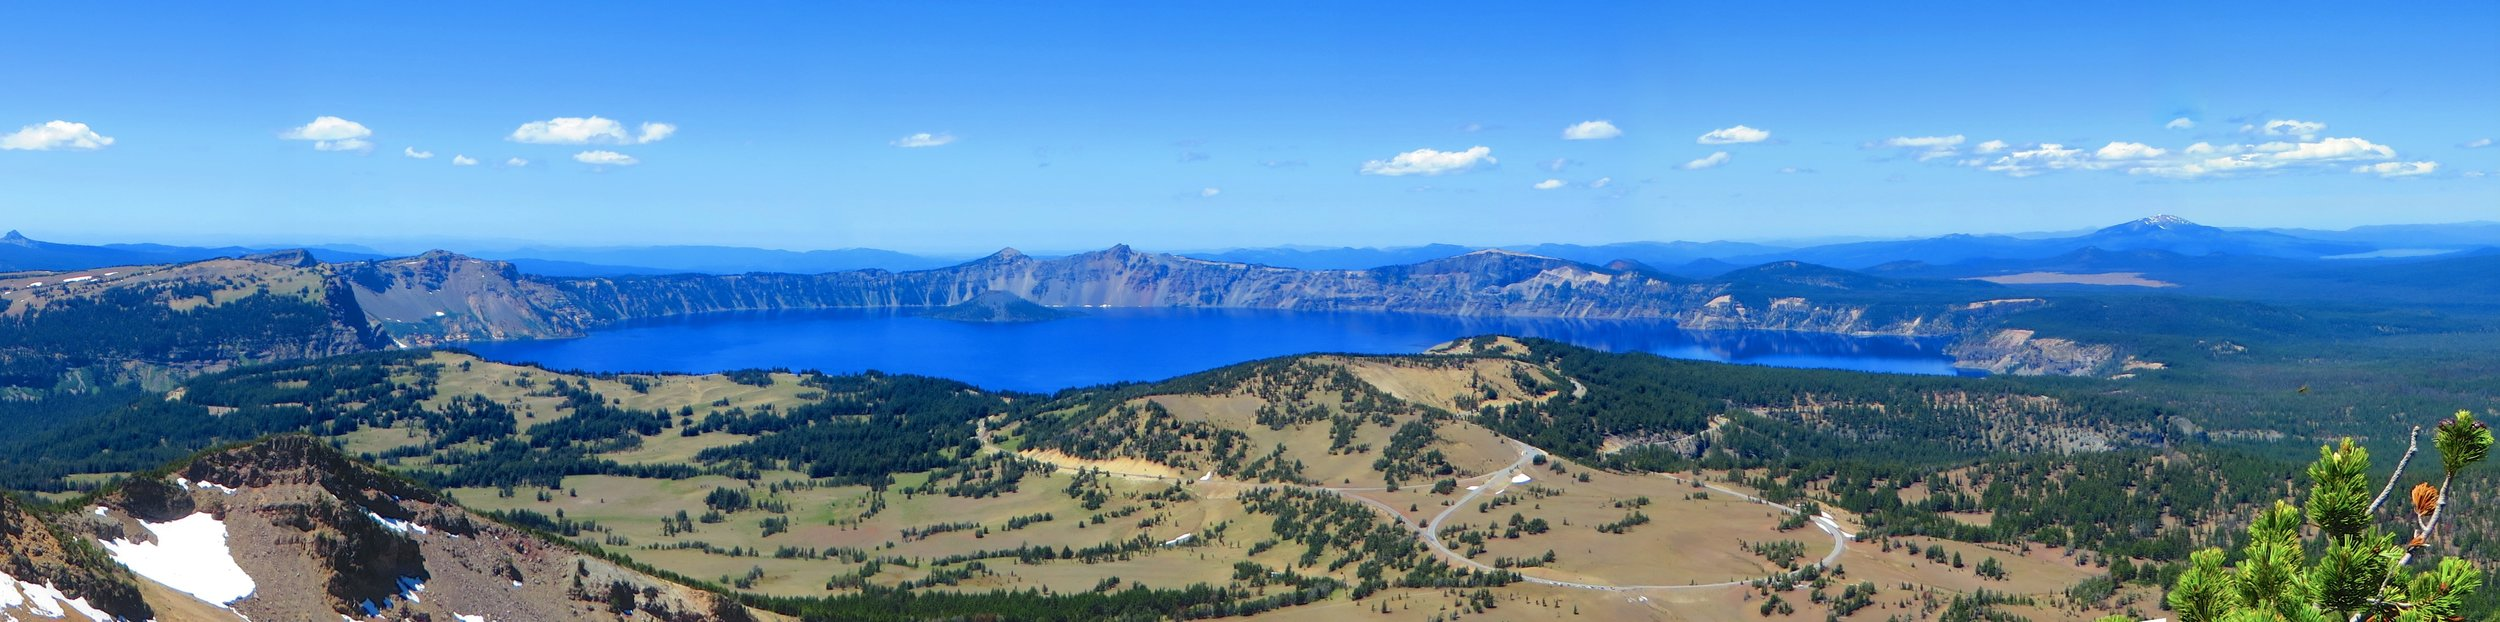 Crater Lake Oregon national park panorama mt scott